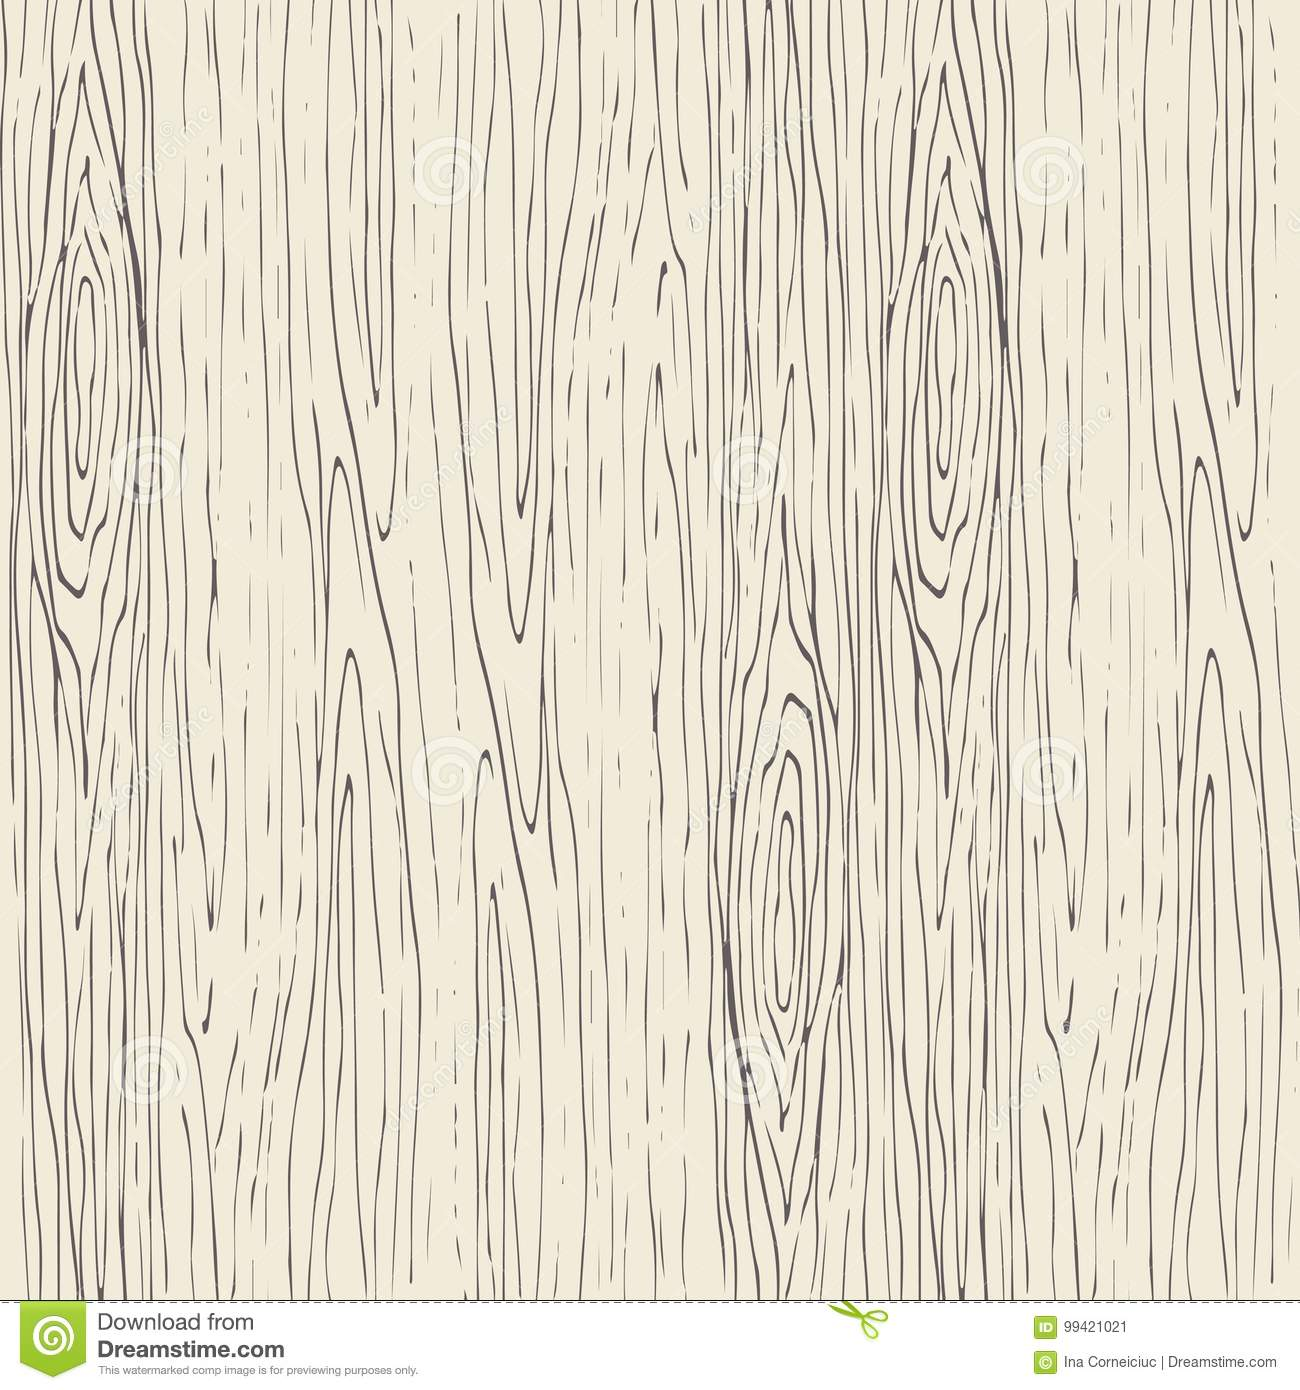 Seamless Wood Grain Pattern Wooden Texture Vector Background Stock